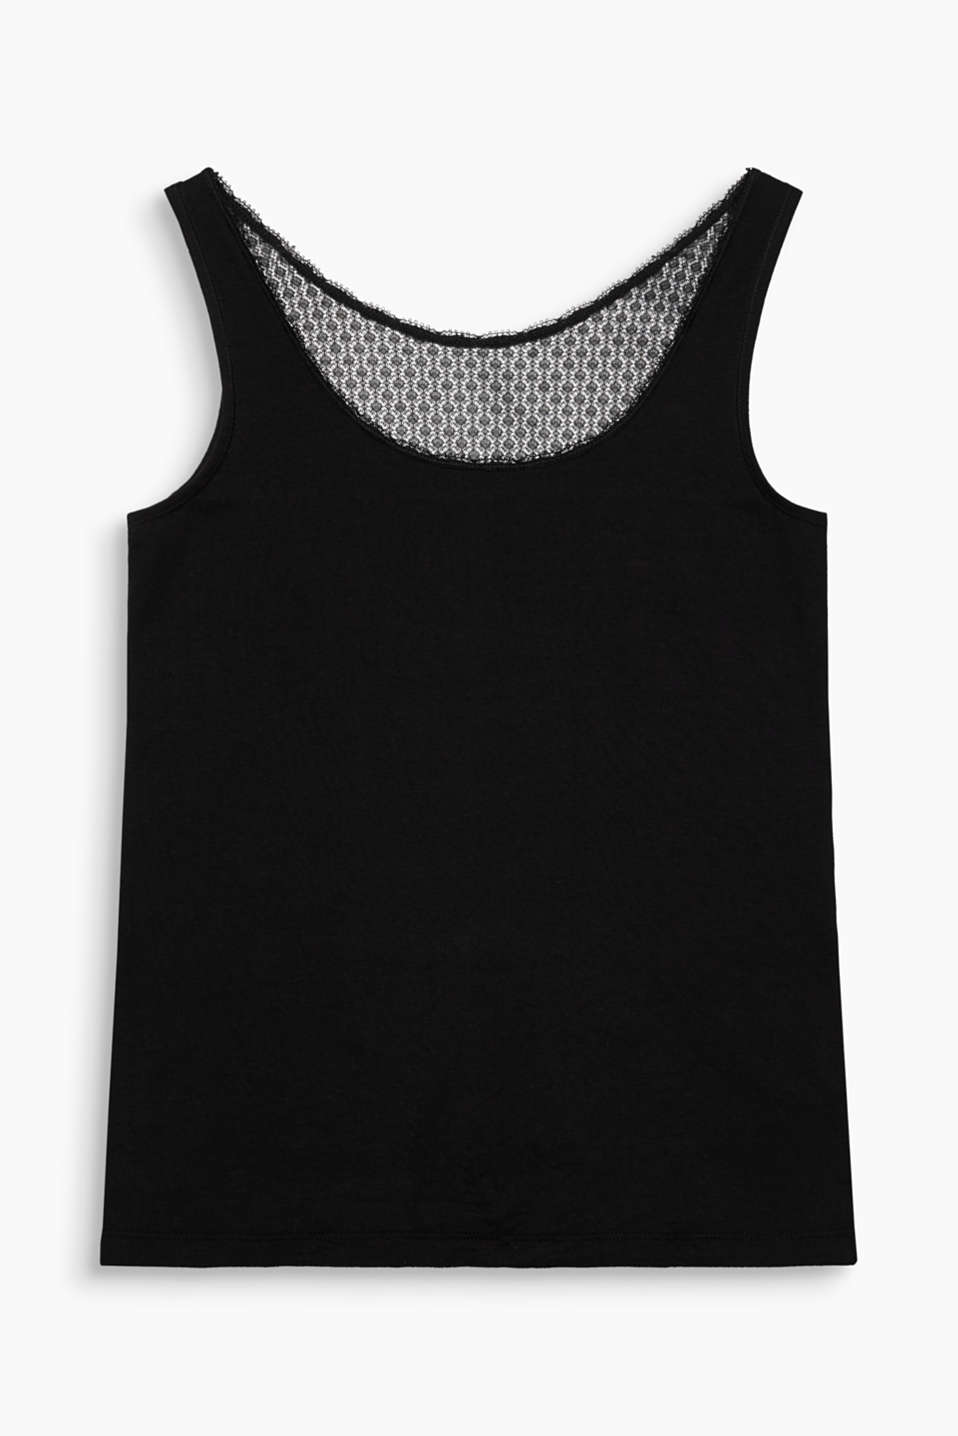 DENTON collection – your feminine basic top – blended cotton vest top with a lace insert at the back